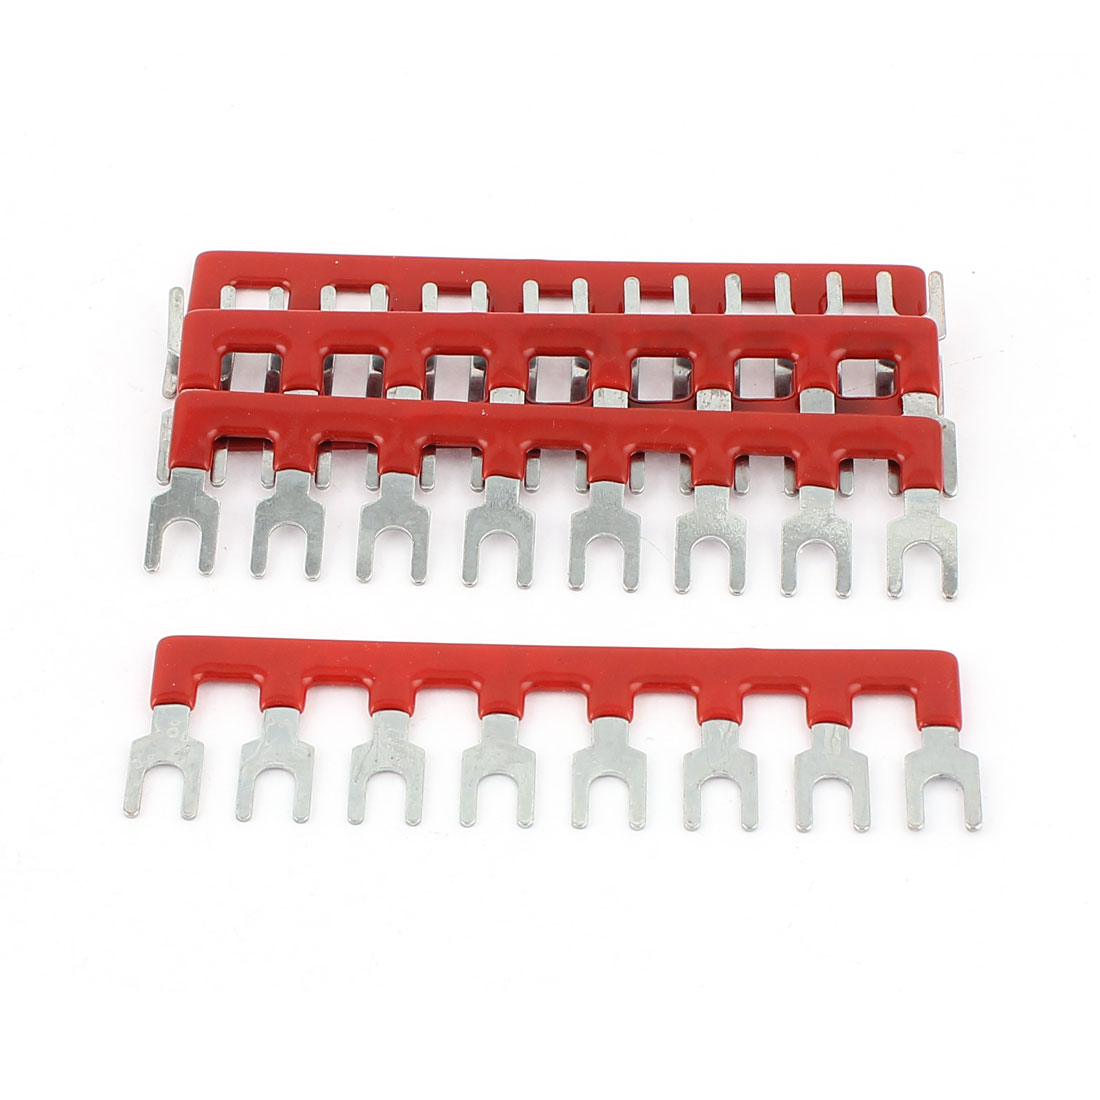 5 Pcs Fork Type 8 Postions Terminal Strip Jumper Block 400V 10A Red